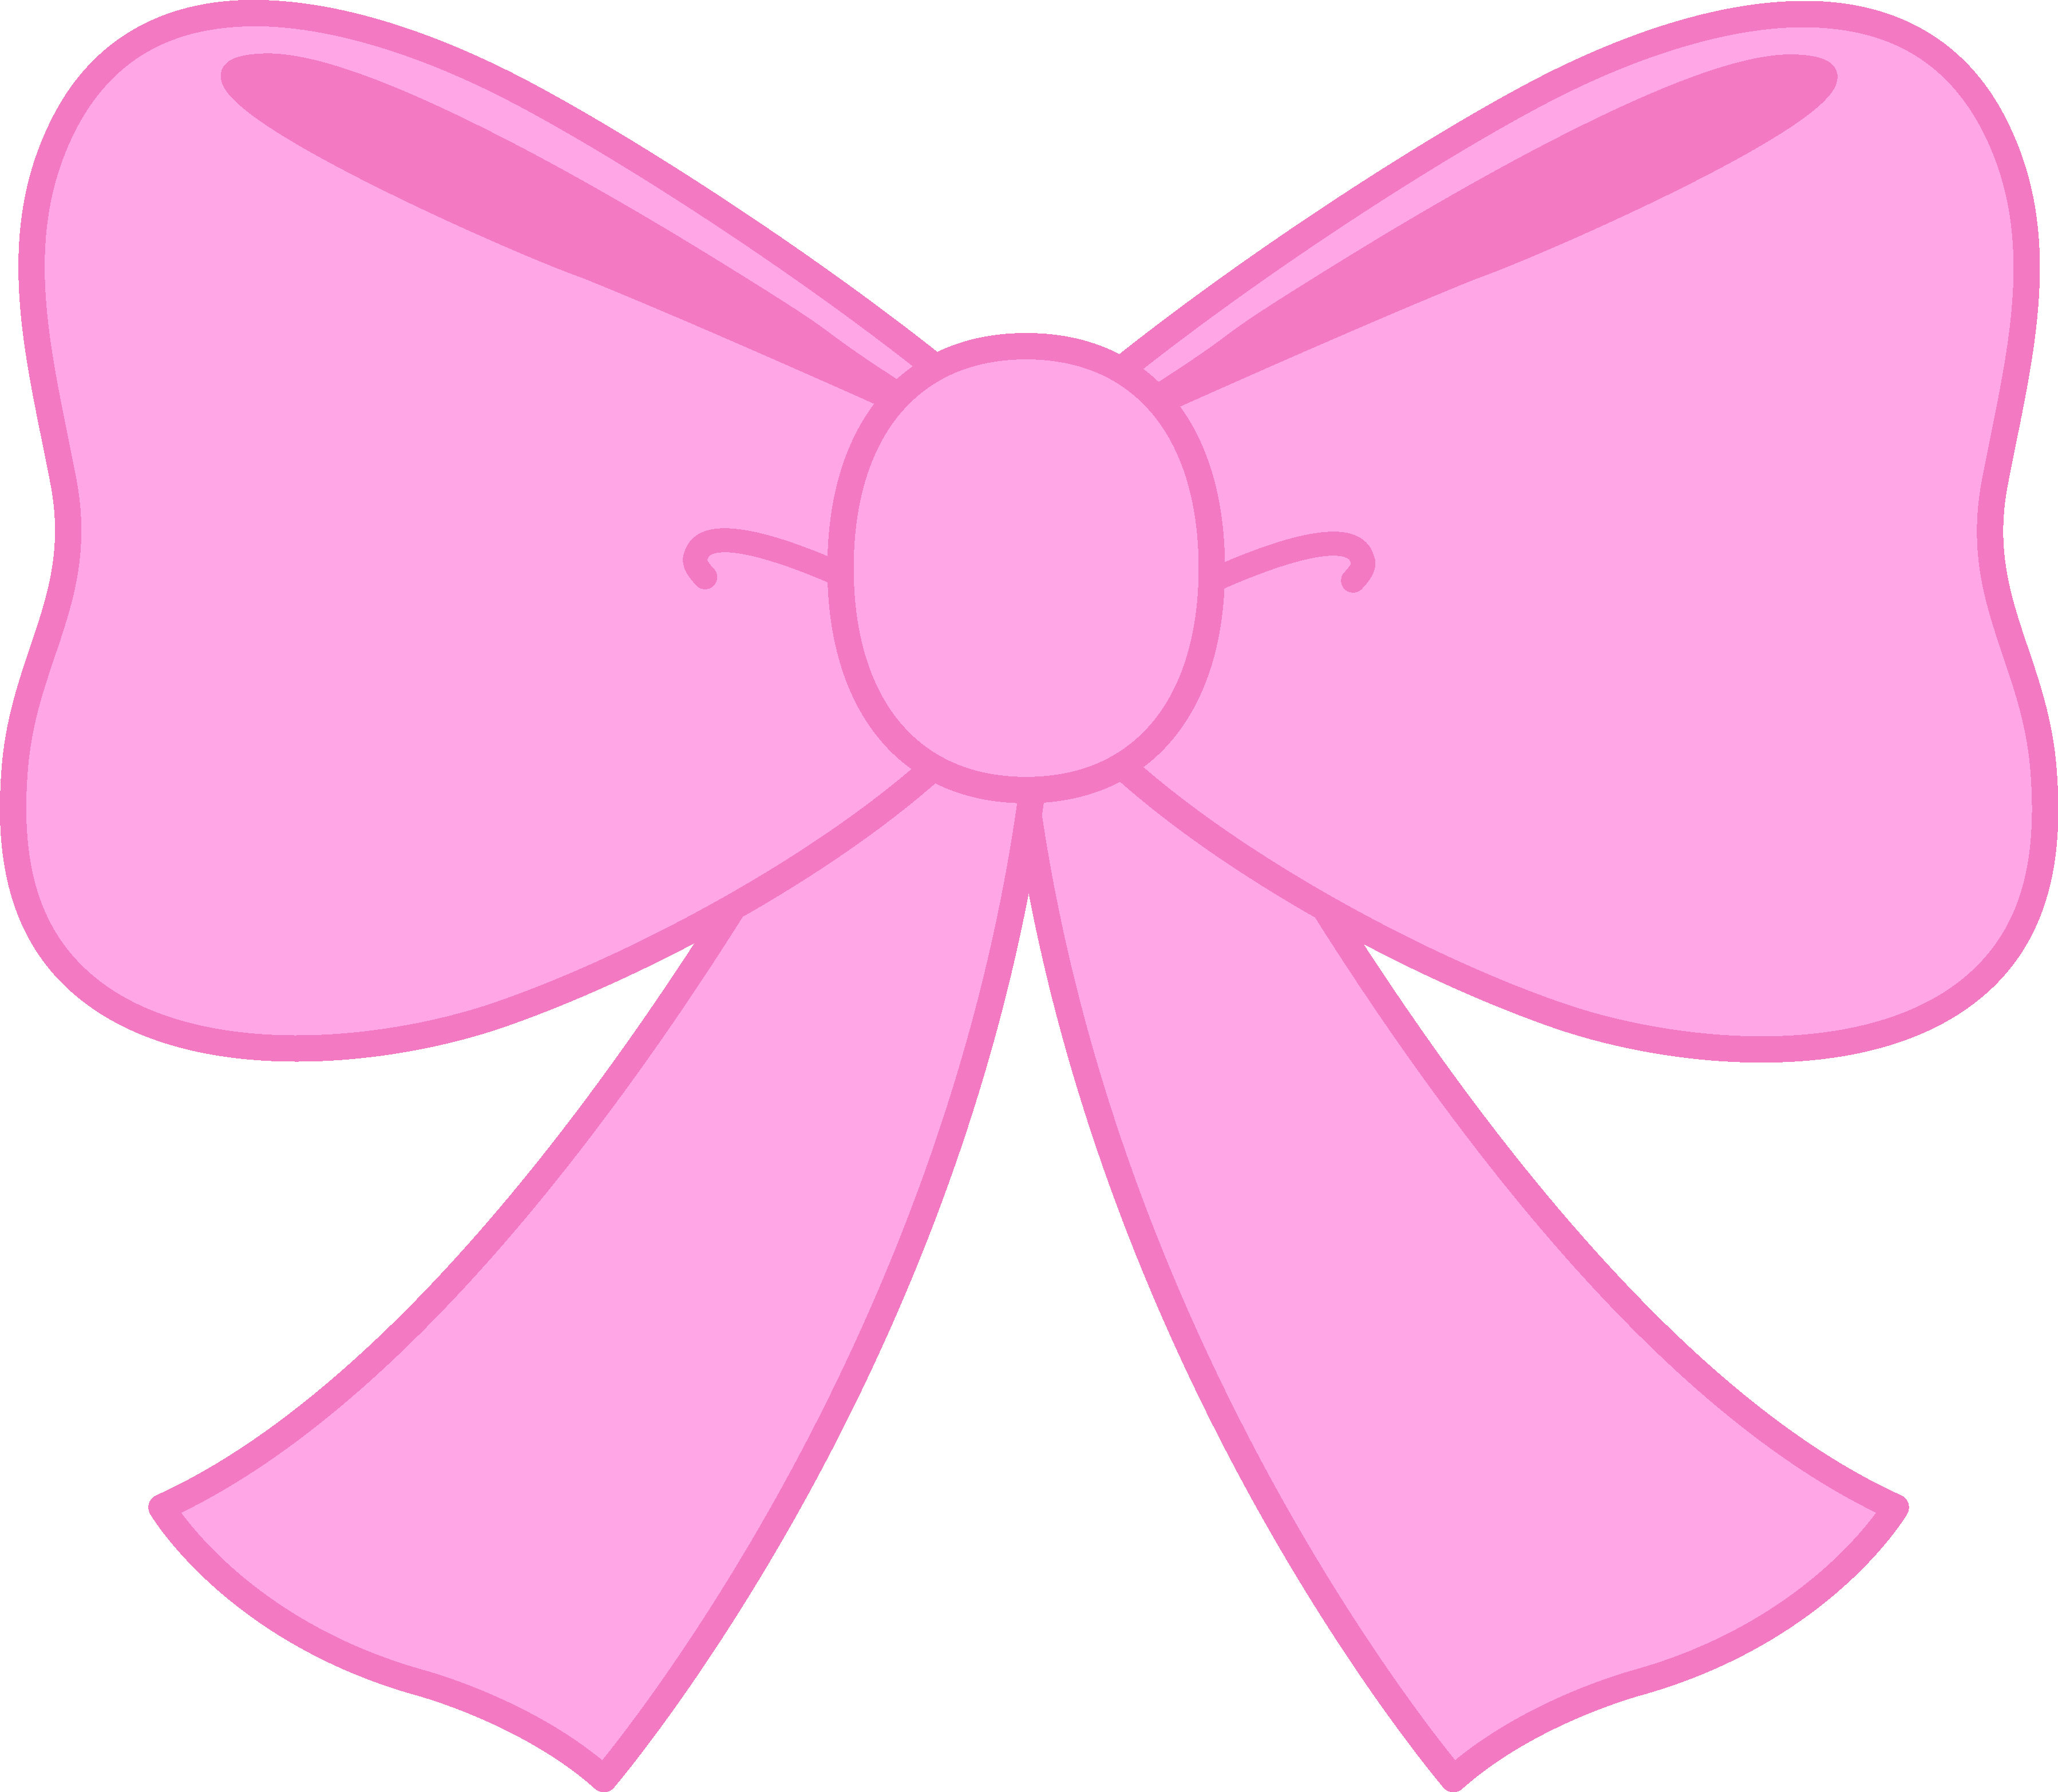 royalty free Bow clipart girl bow. Cute pink free clip